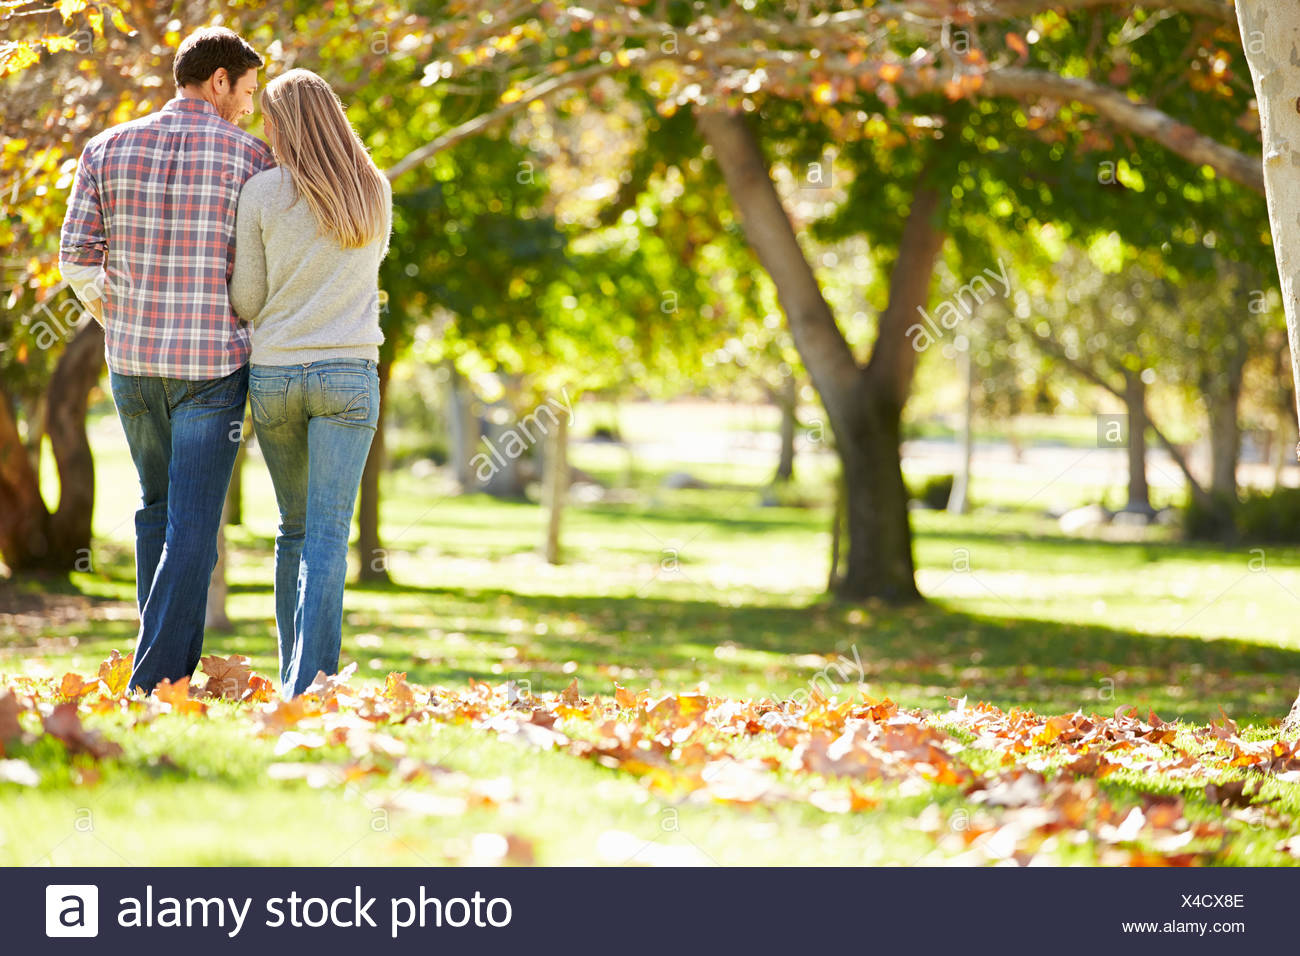 Rear View Of Romantic Couple Walking Through Autumn Woodland - Stock Image